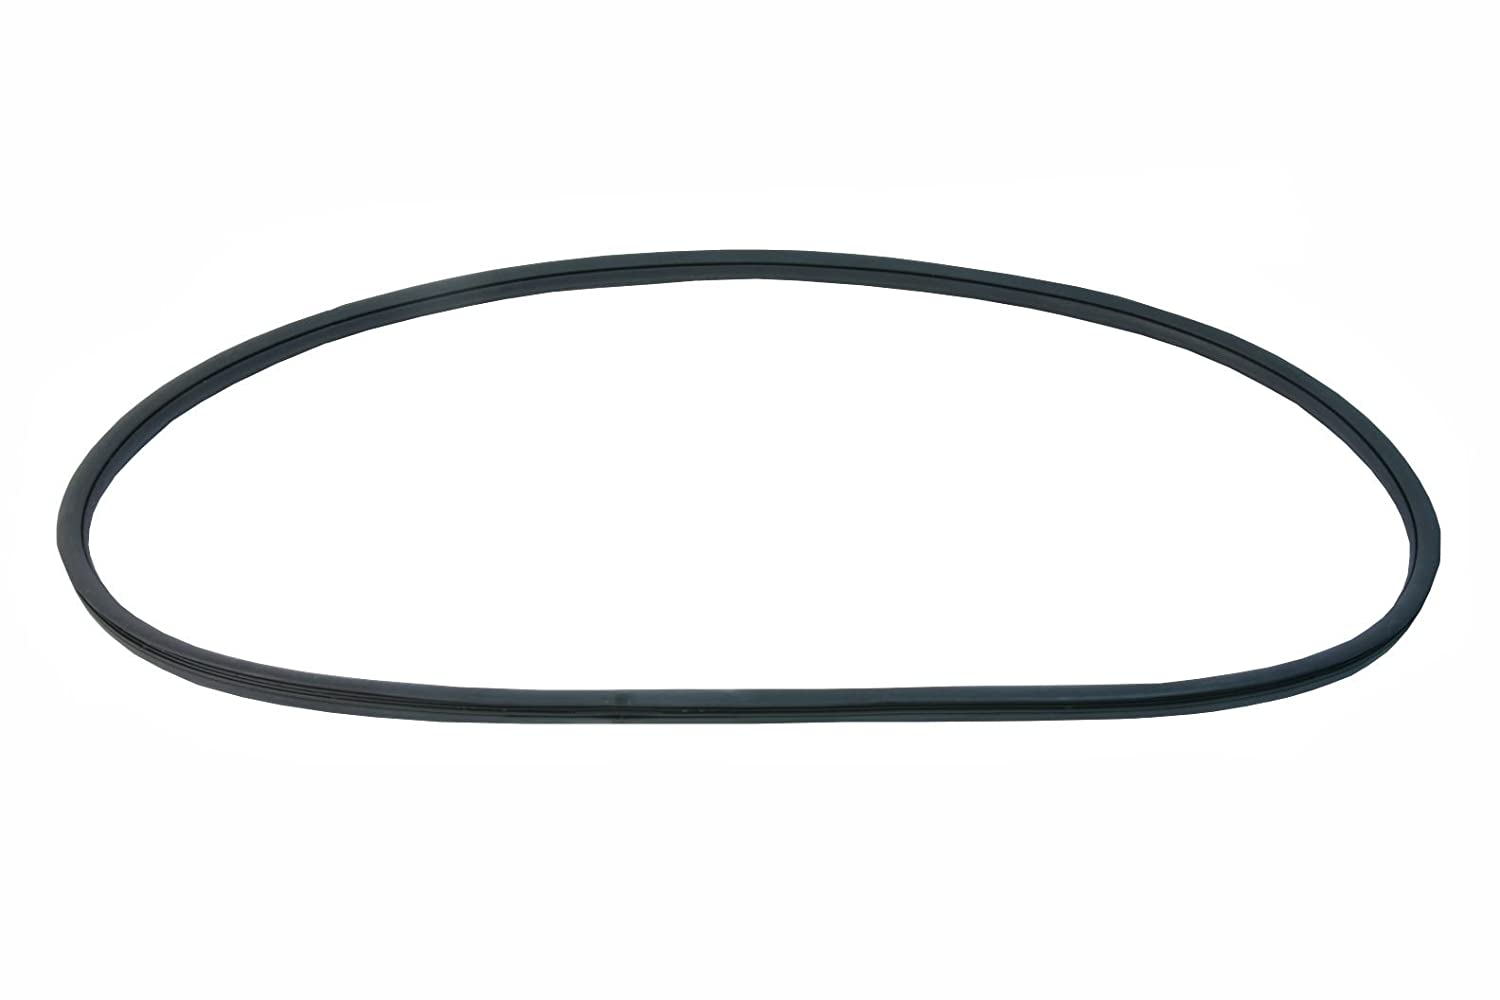 URO Parts 113845521J Rear Window Seal, 1 Pack